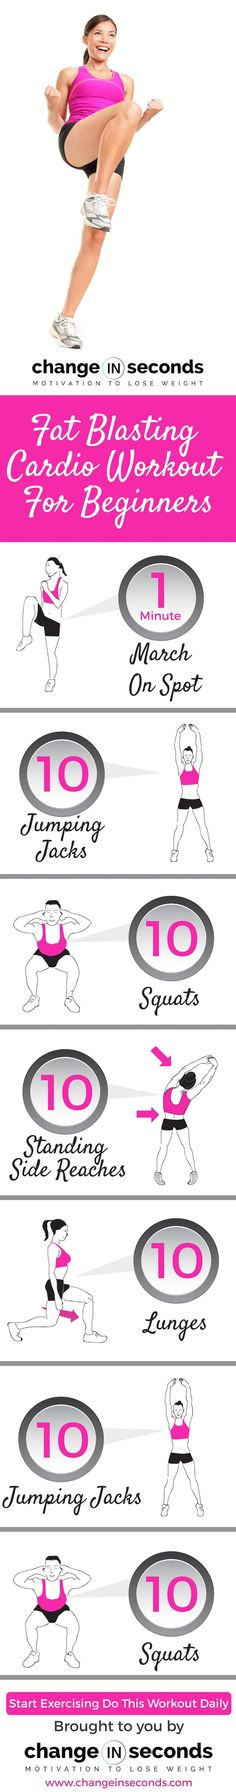 "Fat Blasting Cardio Workout For Beginners (Download PDF) <a href=""http://www.changeinseconds.com/fat-blasting-cardio-workout-for-beginners/"" rel=""nofollow"" target=""_blank"">www.changeinsecon...</a> AD <a href=""https://www.instagram.com/fit4less_canada/"" rel=""nofollow"" target=""_blank"">www.instagram.com...</a> <a href=""https://twitter.com/fit4less"" rel=""nofollow"" target=""_blank"">twitter.com/fit4less</a>"